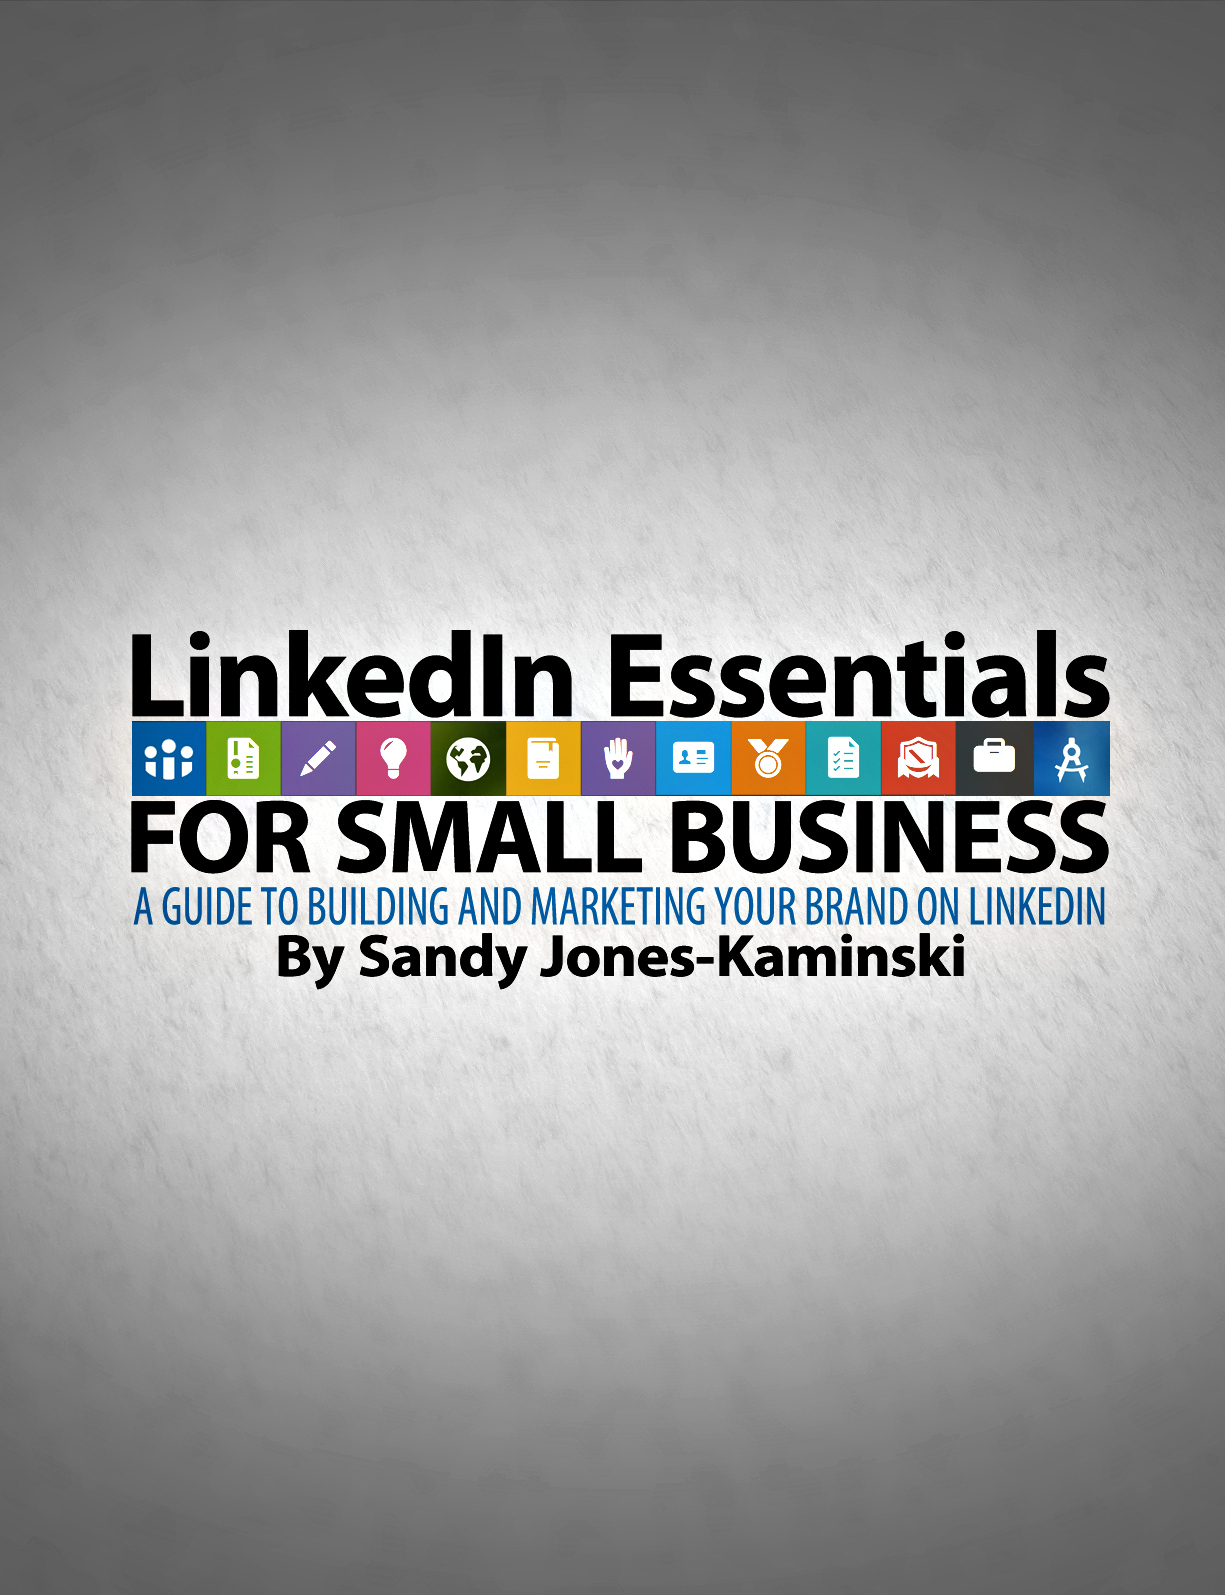 Sign up to get my new eBook and stay in-the-loop about LinkedIn Essentials for Small Business!